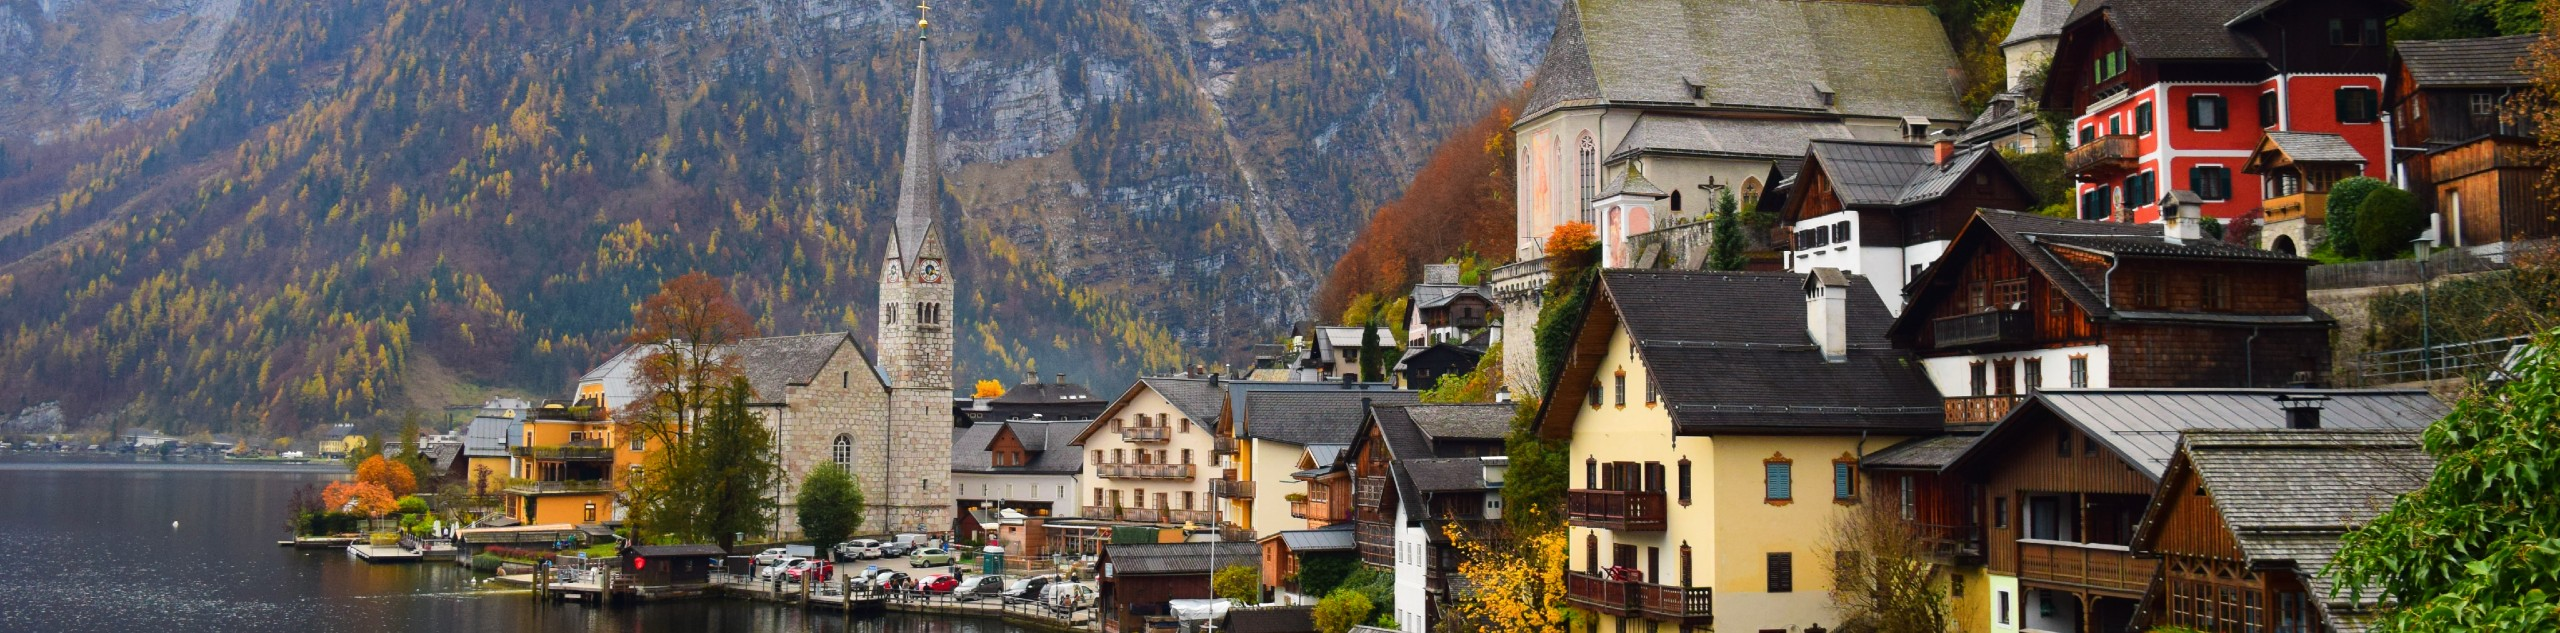 Small town on a lakeshore in Alps, Europe